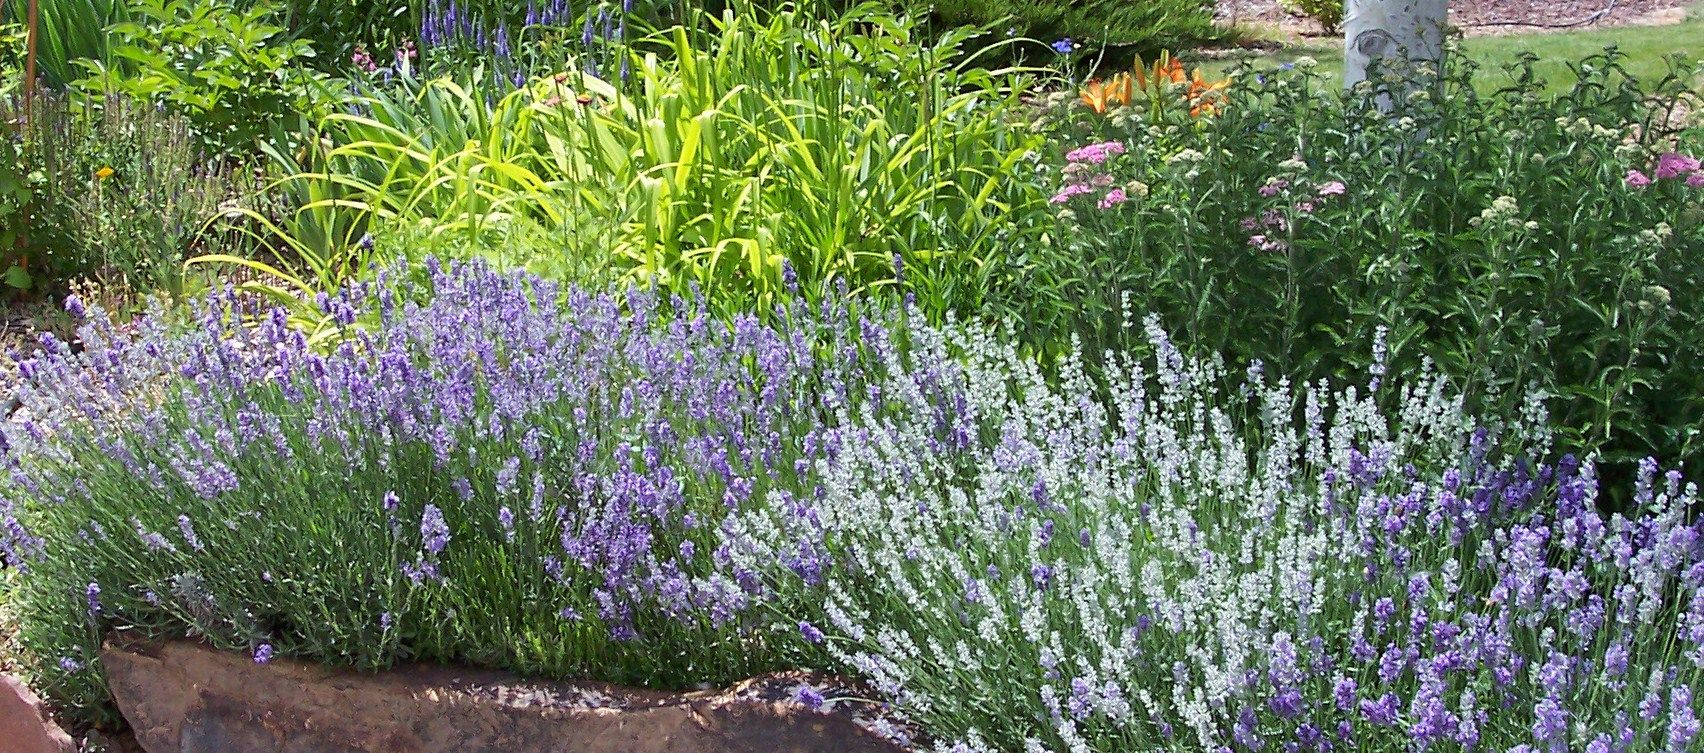 Using Lavender As A Border To Mixed Perennial Bed Perennial Garden Design Front Yard Landscaping Design Perennial Garden